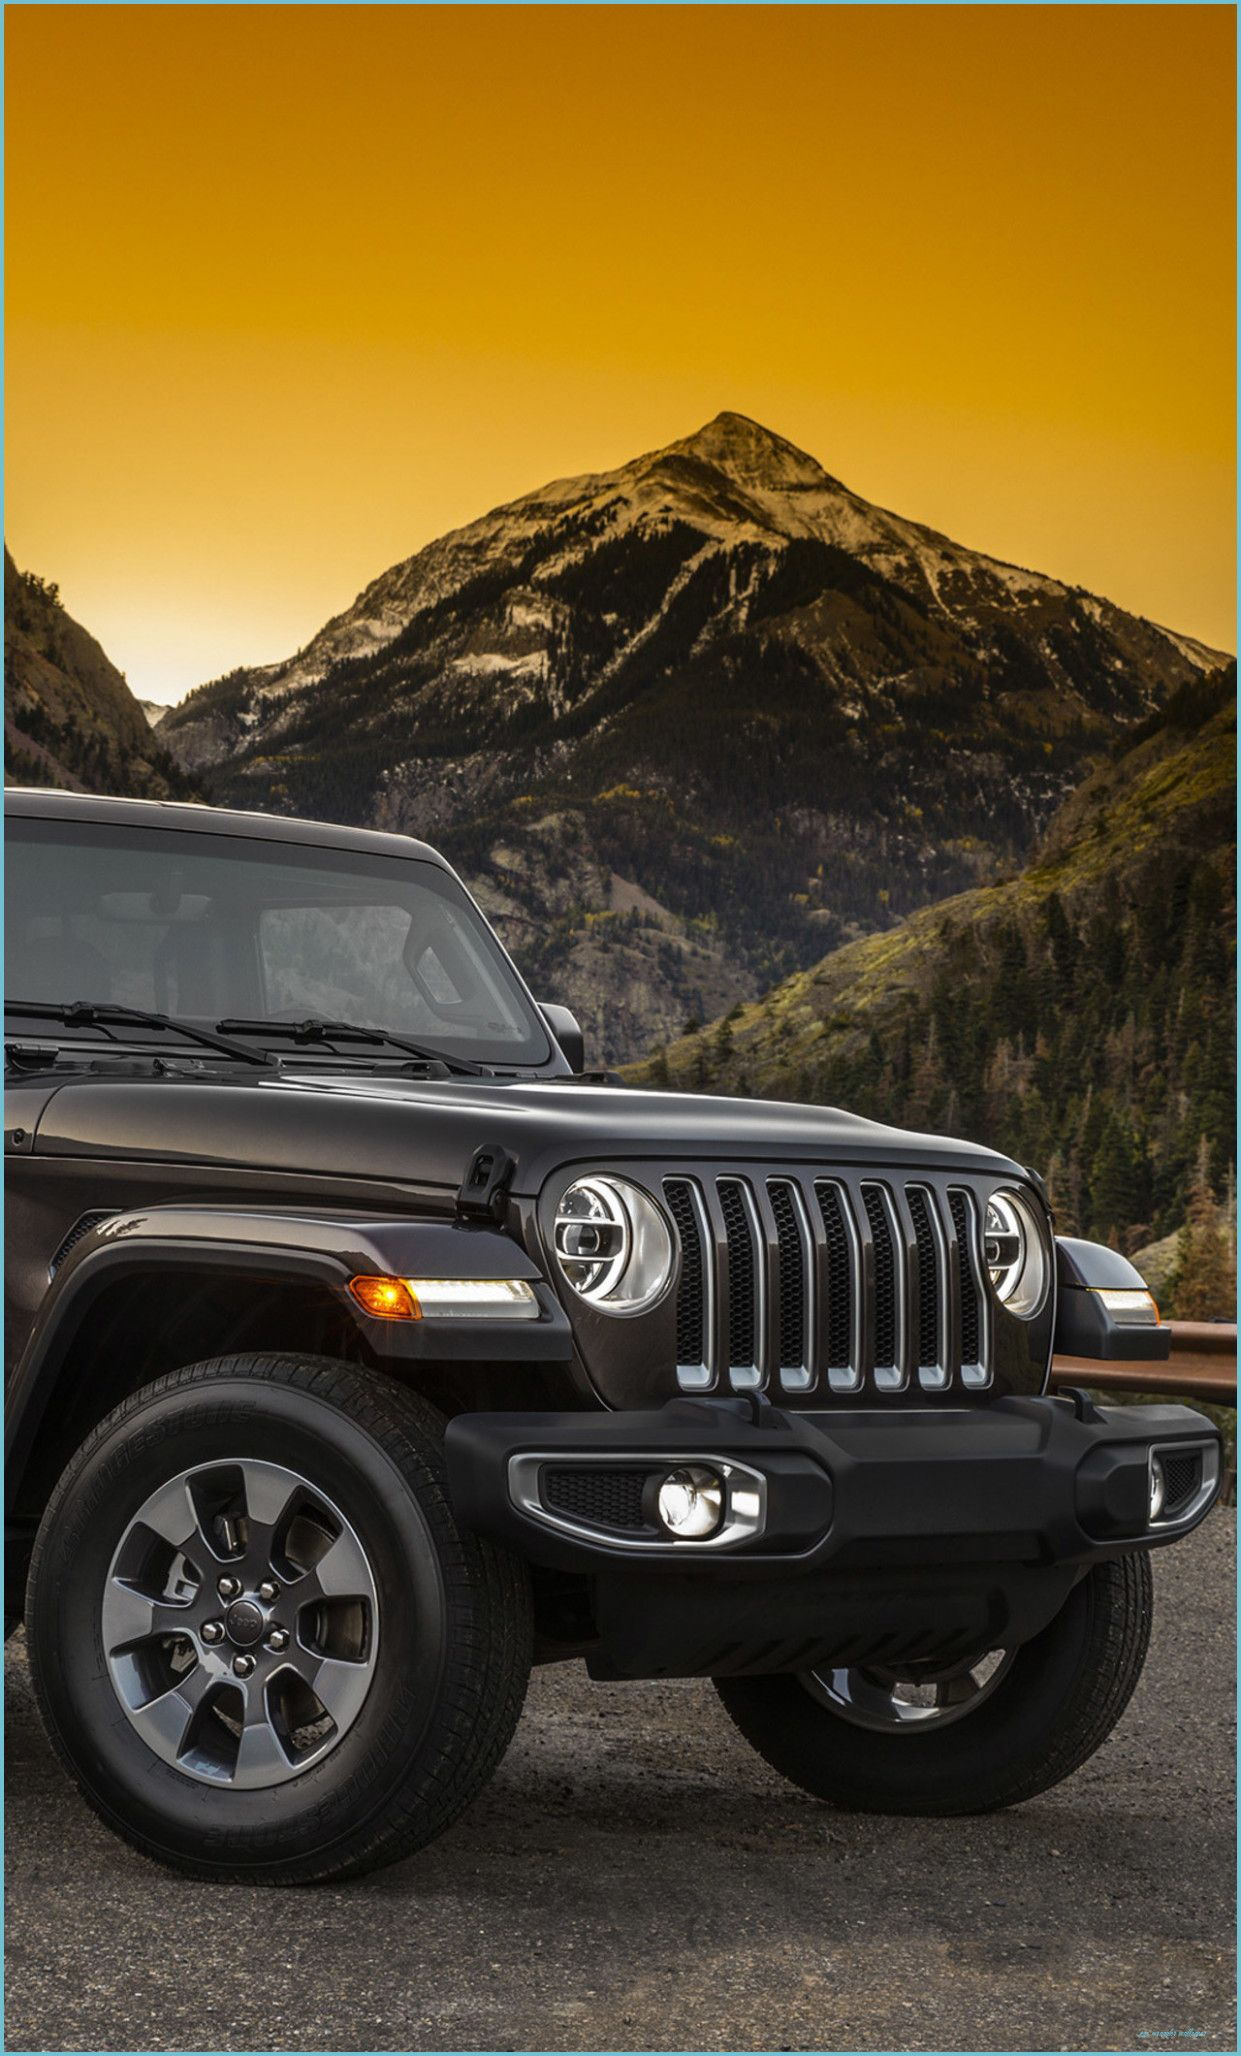 The Ultimate Revelation Of Jeep Wrangler Wallpaper Jeep Wrangler Wallpaper Jeep Wallpaper Jeep Wrangler Jeep